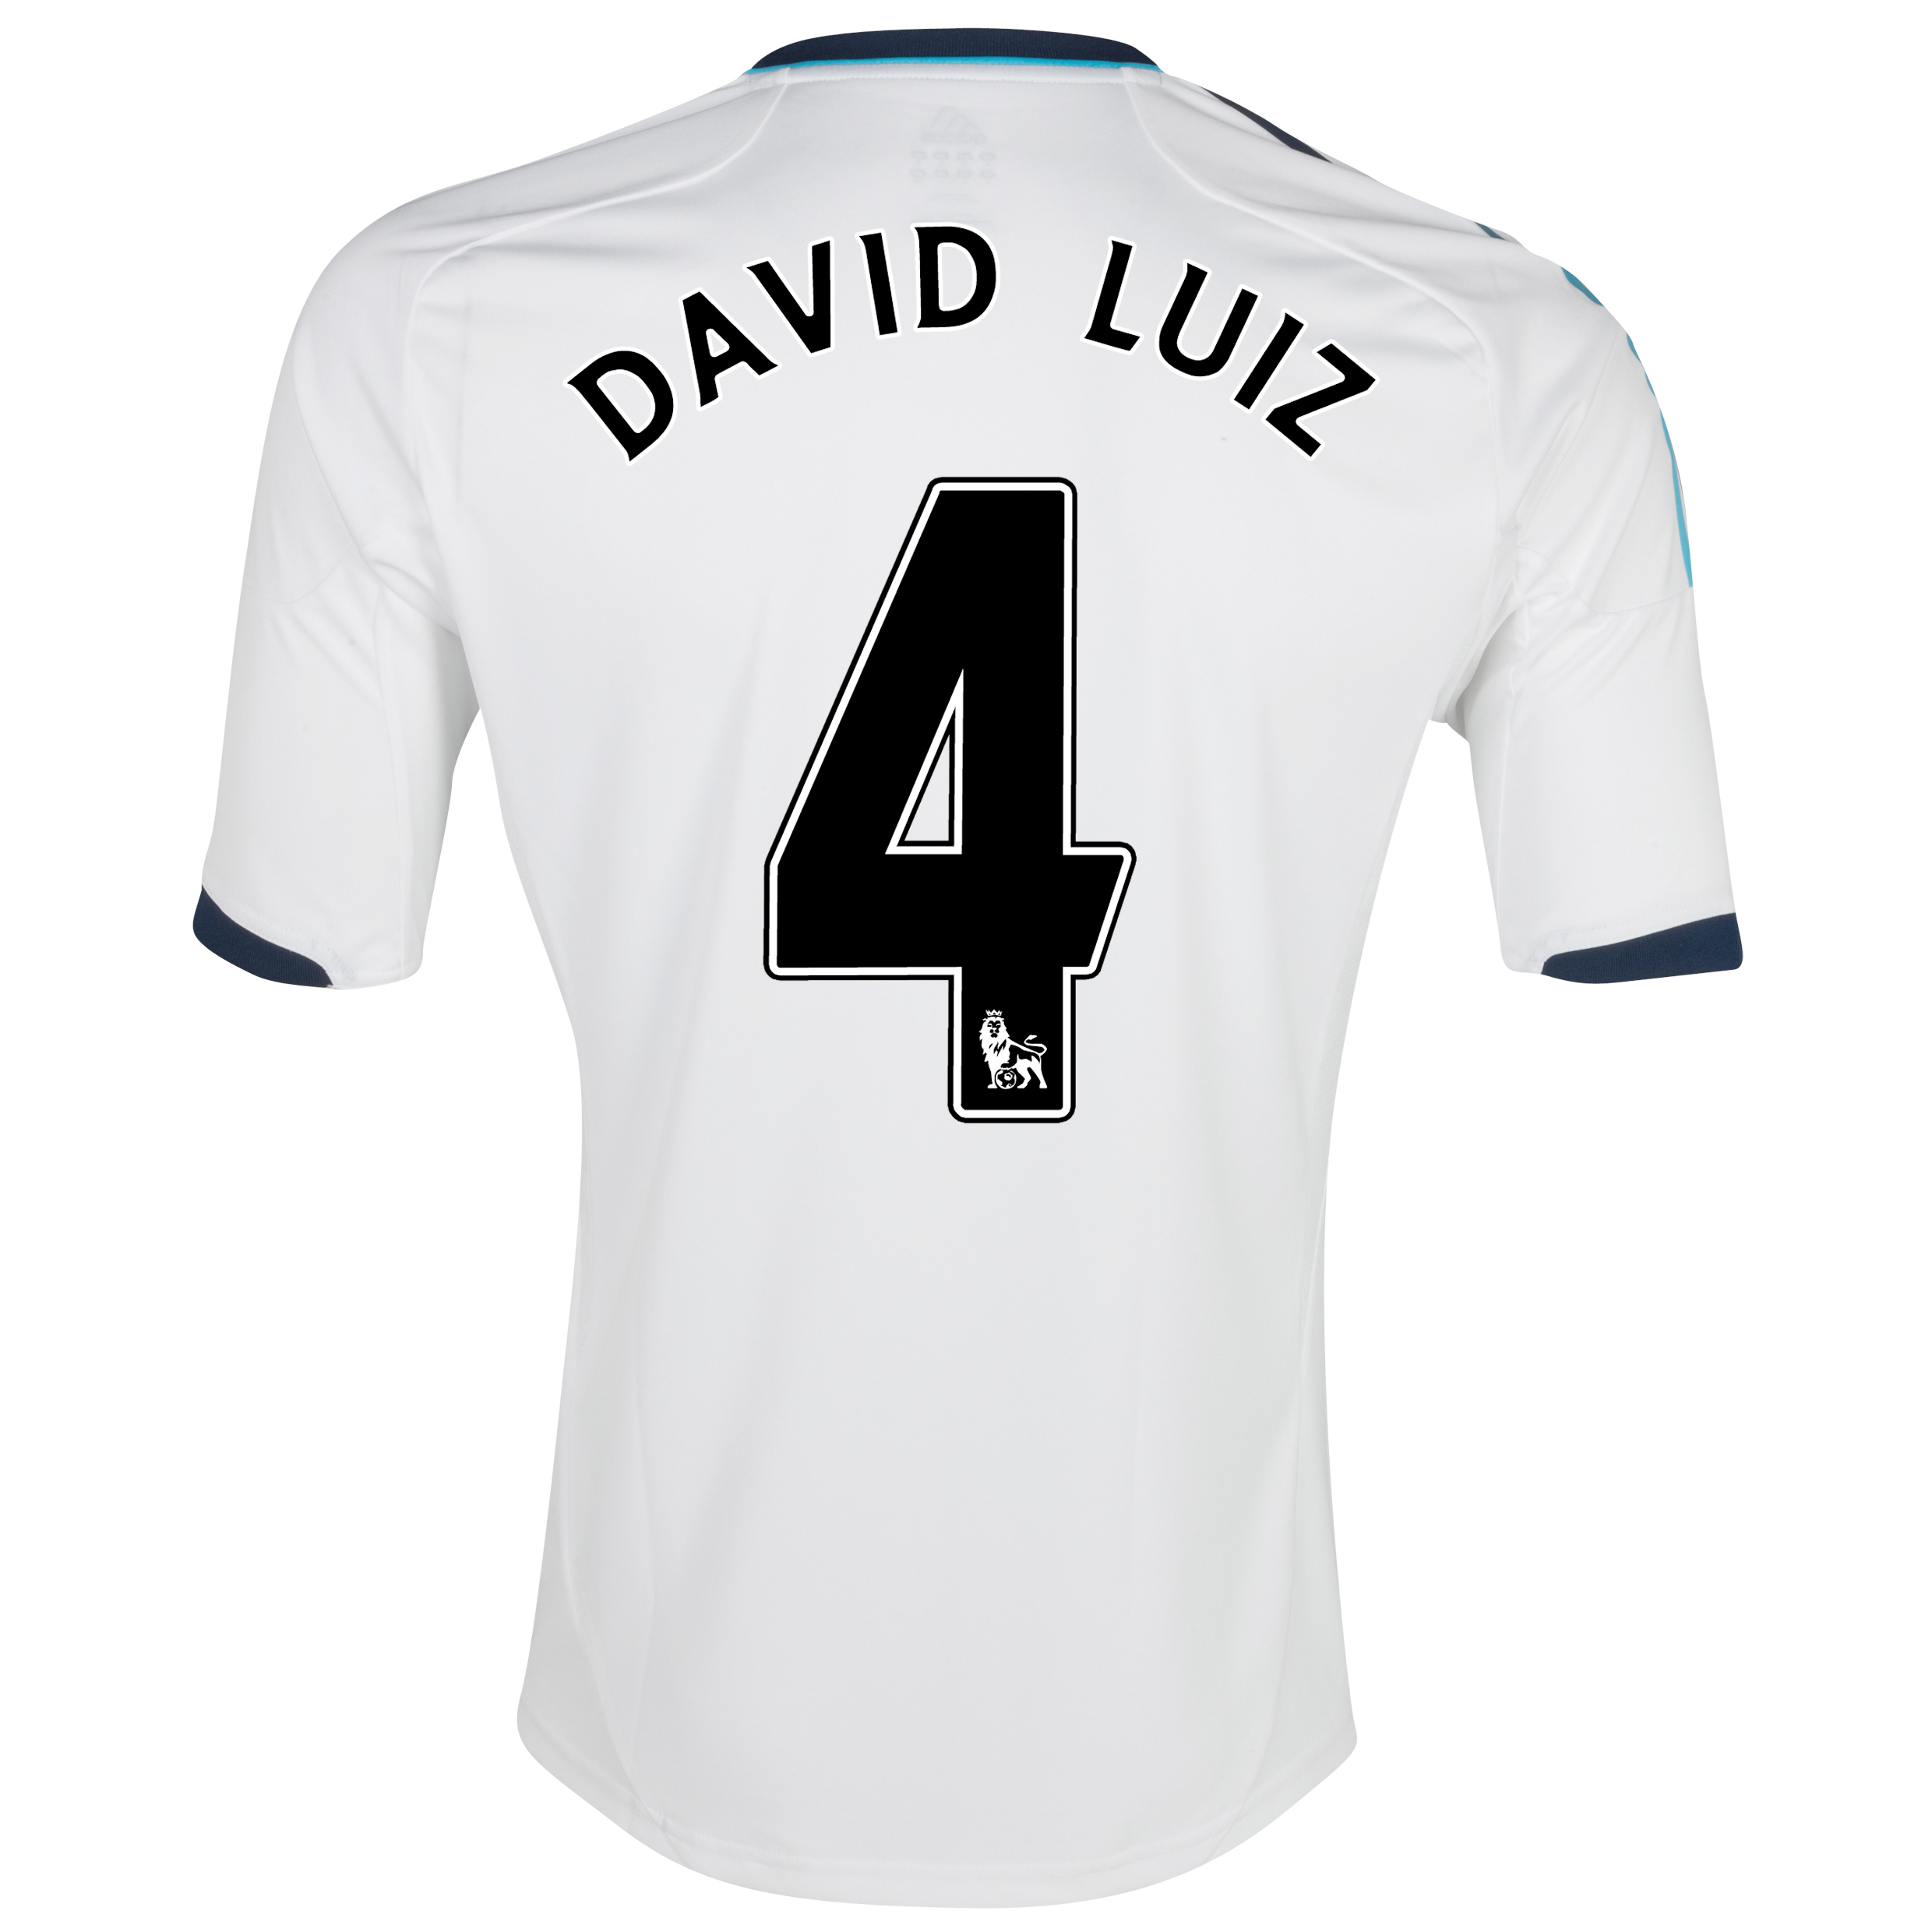 Chelsea Away Shirt 2012/13 - Kids with David Luiz 4 printing